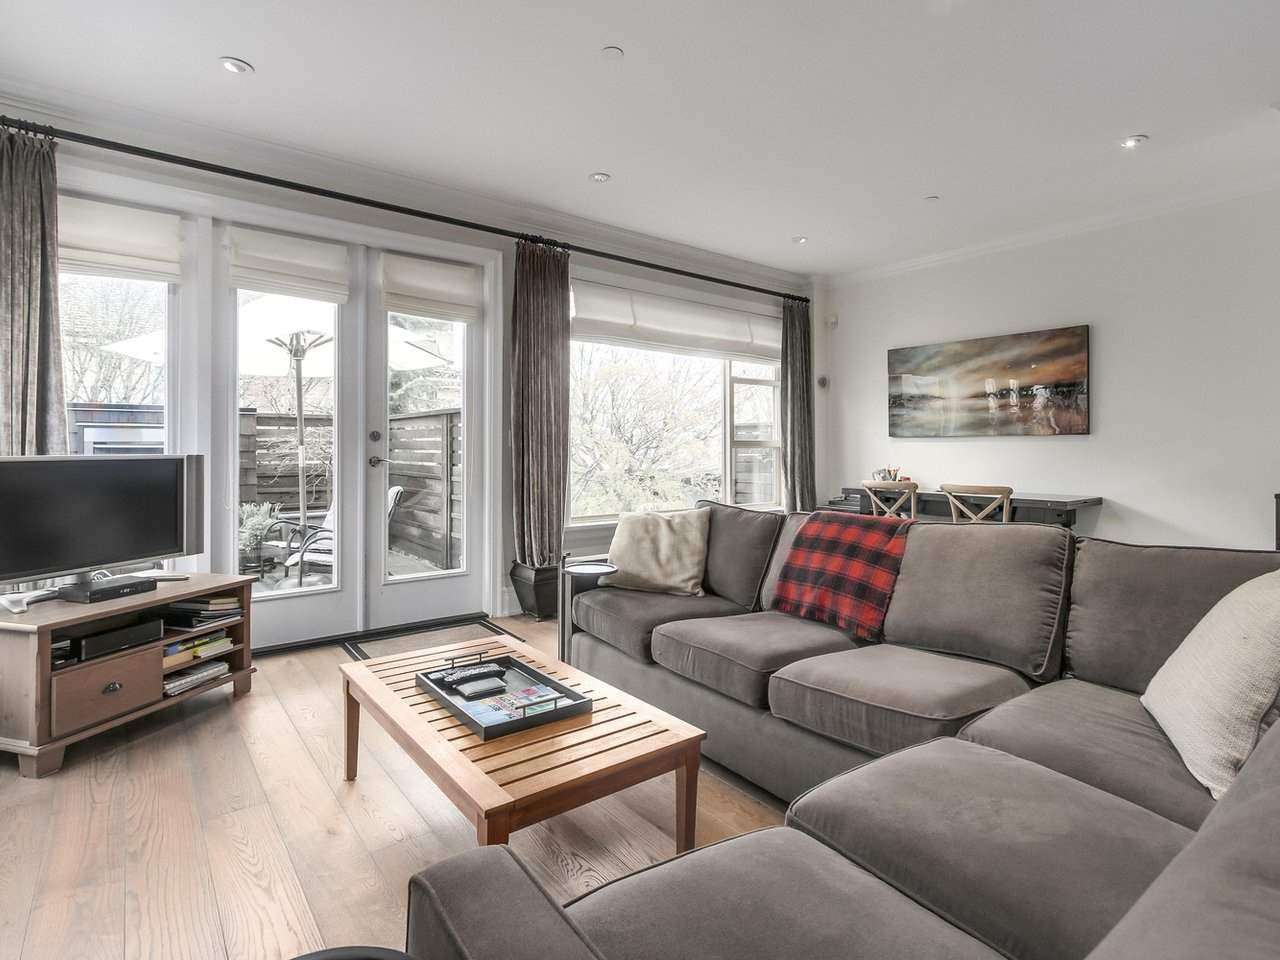 """Photo 2: Photos: 4 249 W 16TH Street in North Vancouver: Central Lonsdale House 1/2 Duplex for sale in """"THE WEST"""" : MLS®# R2262955"""